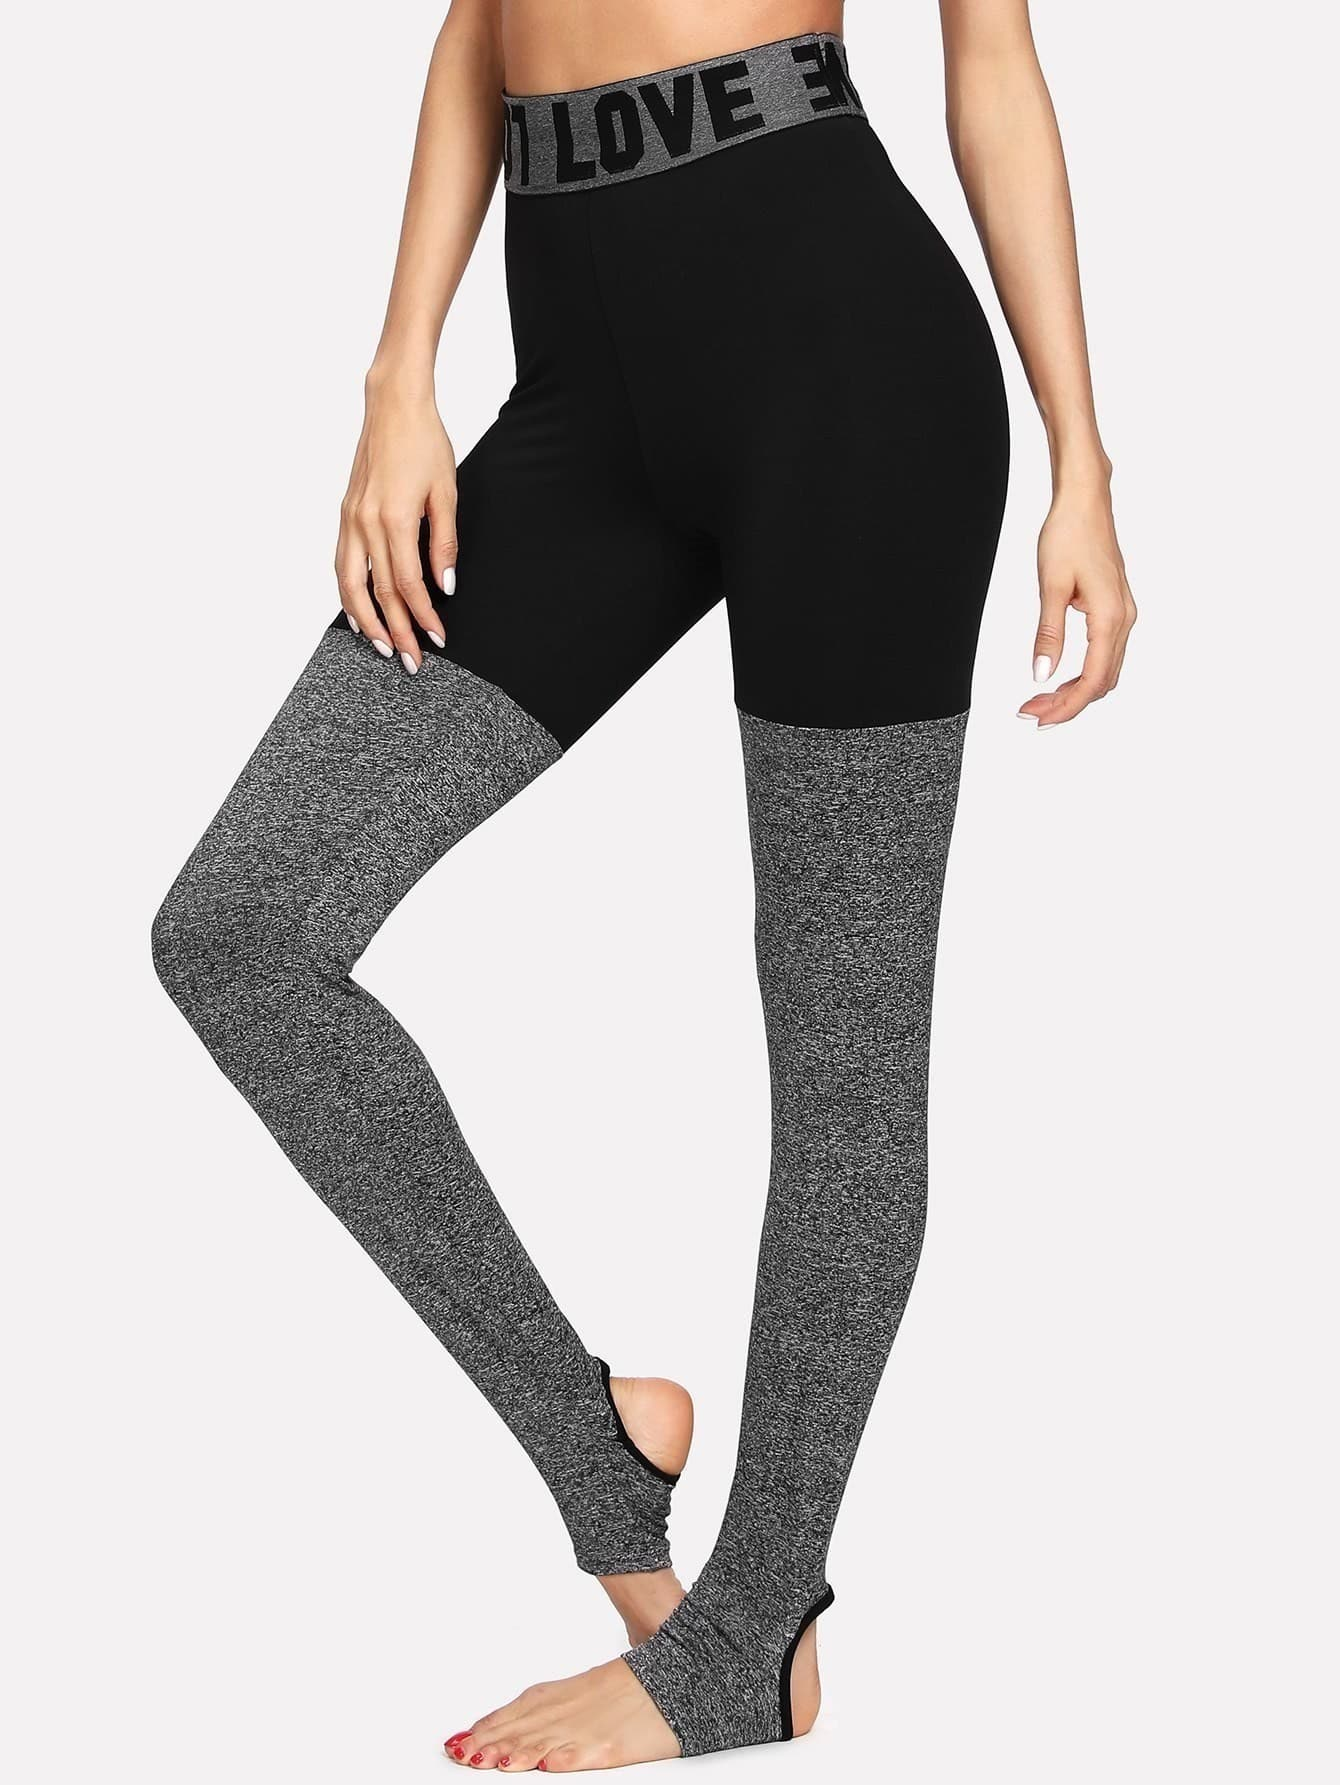 Two Tone Stirrup Leggings two tone heart